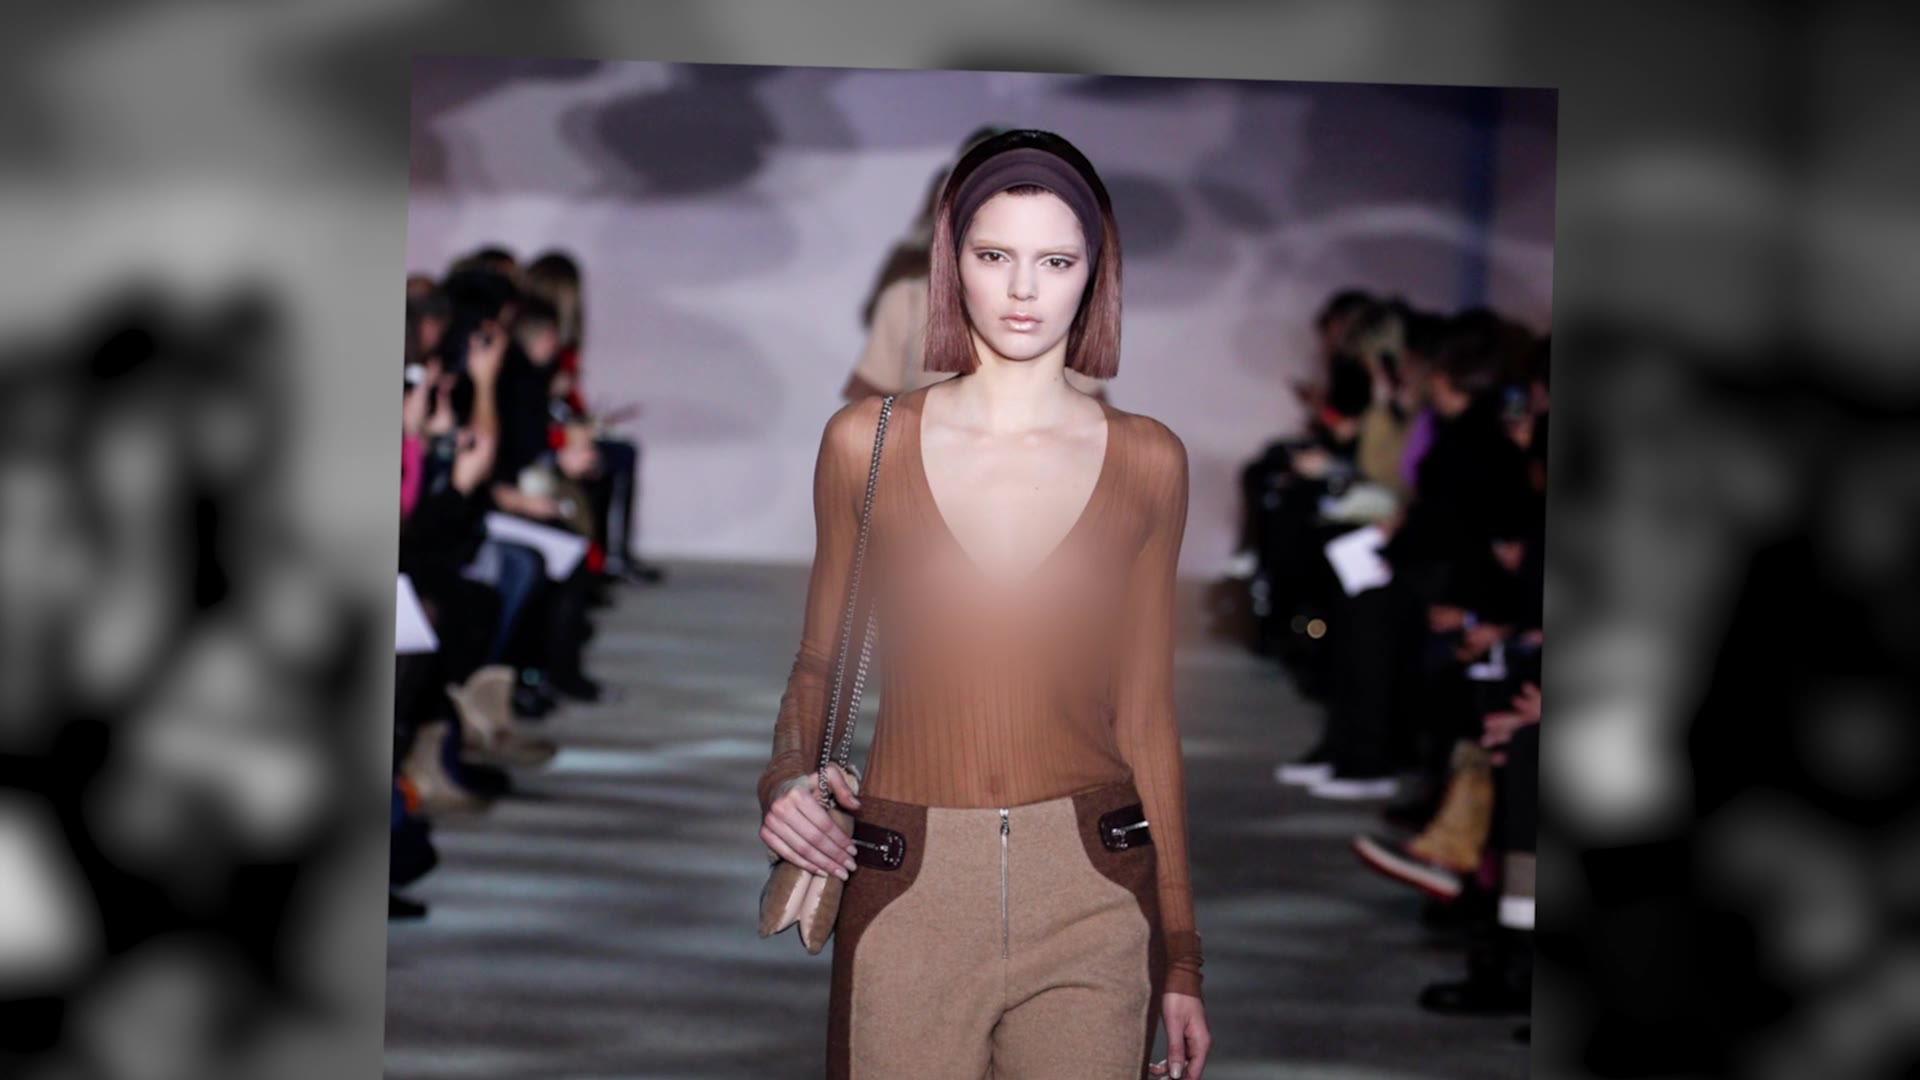 Kendall Jenner Flaunts Sheer Top On The Runway